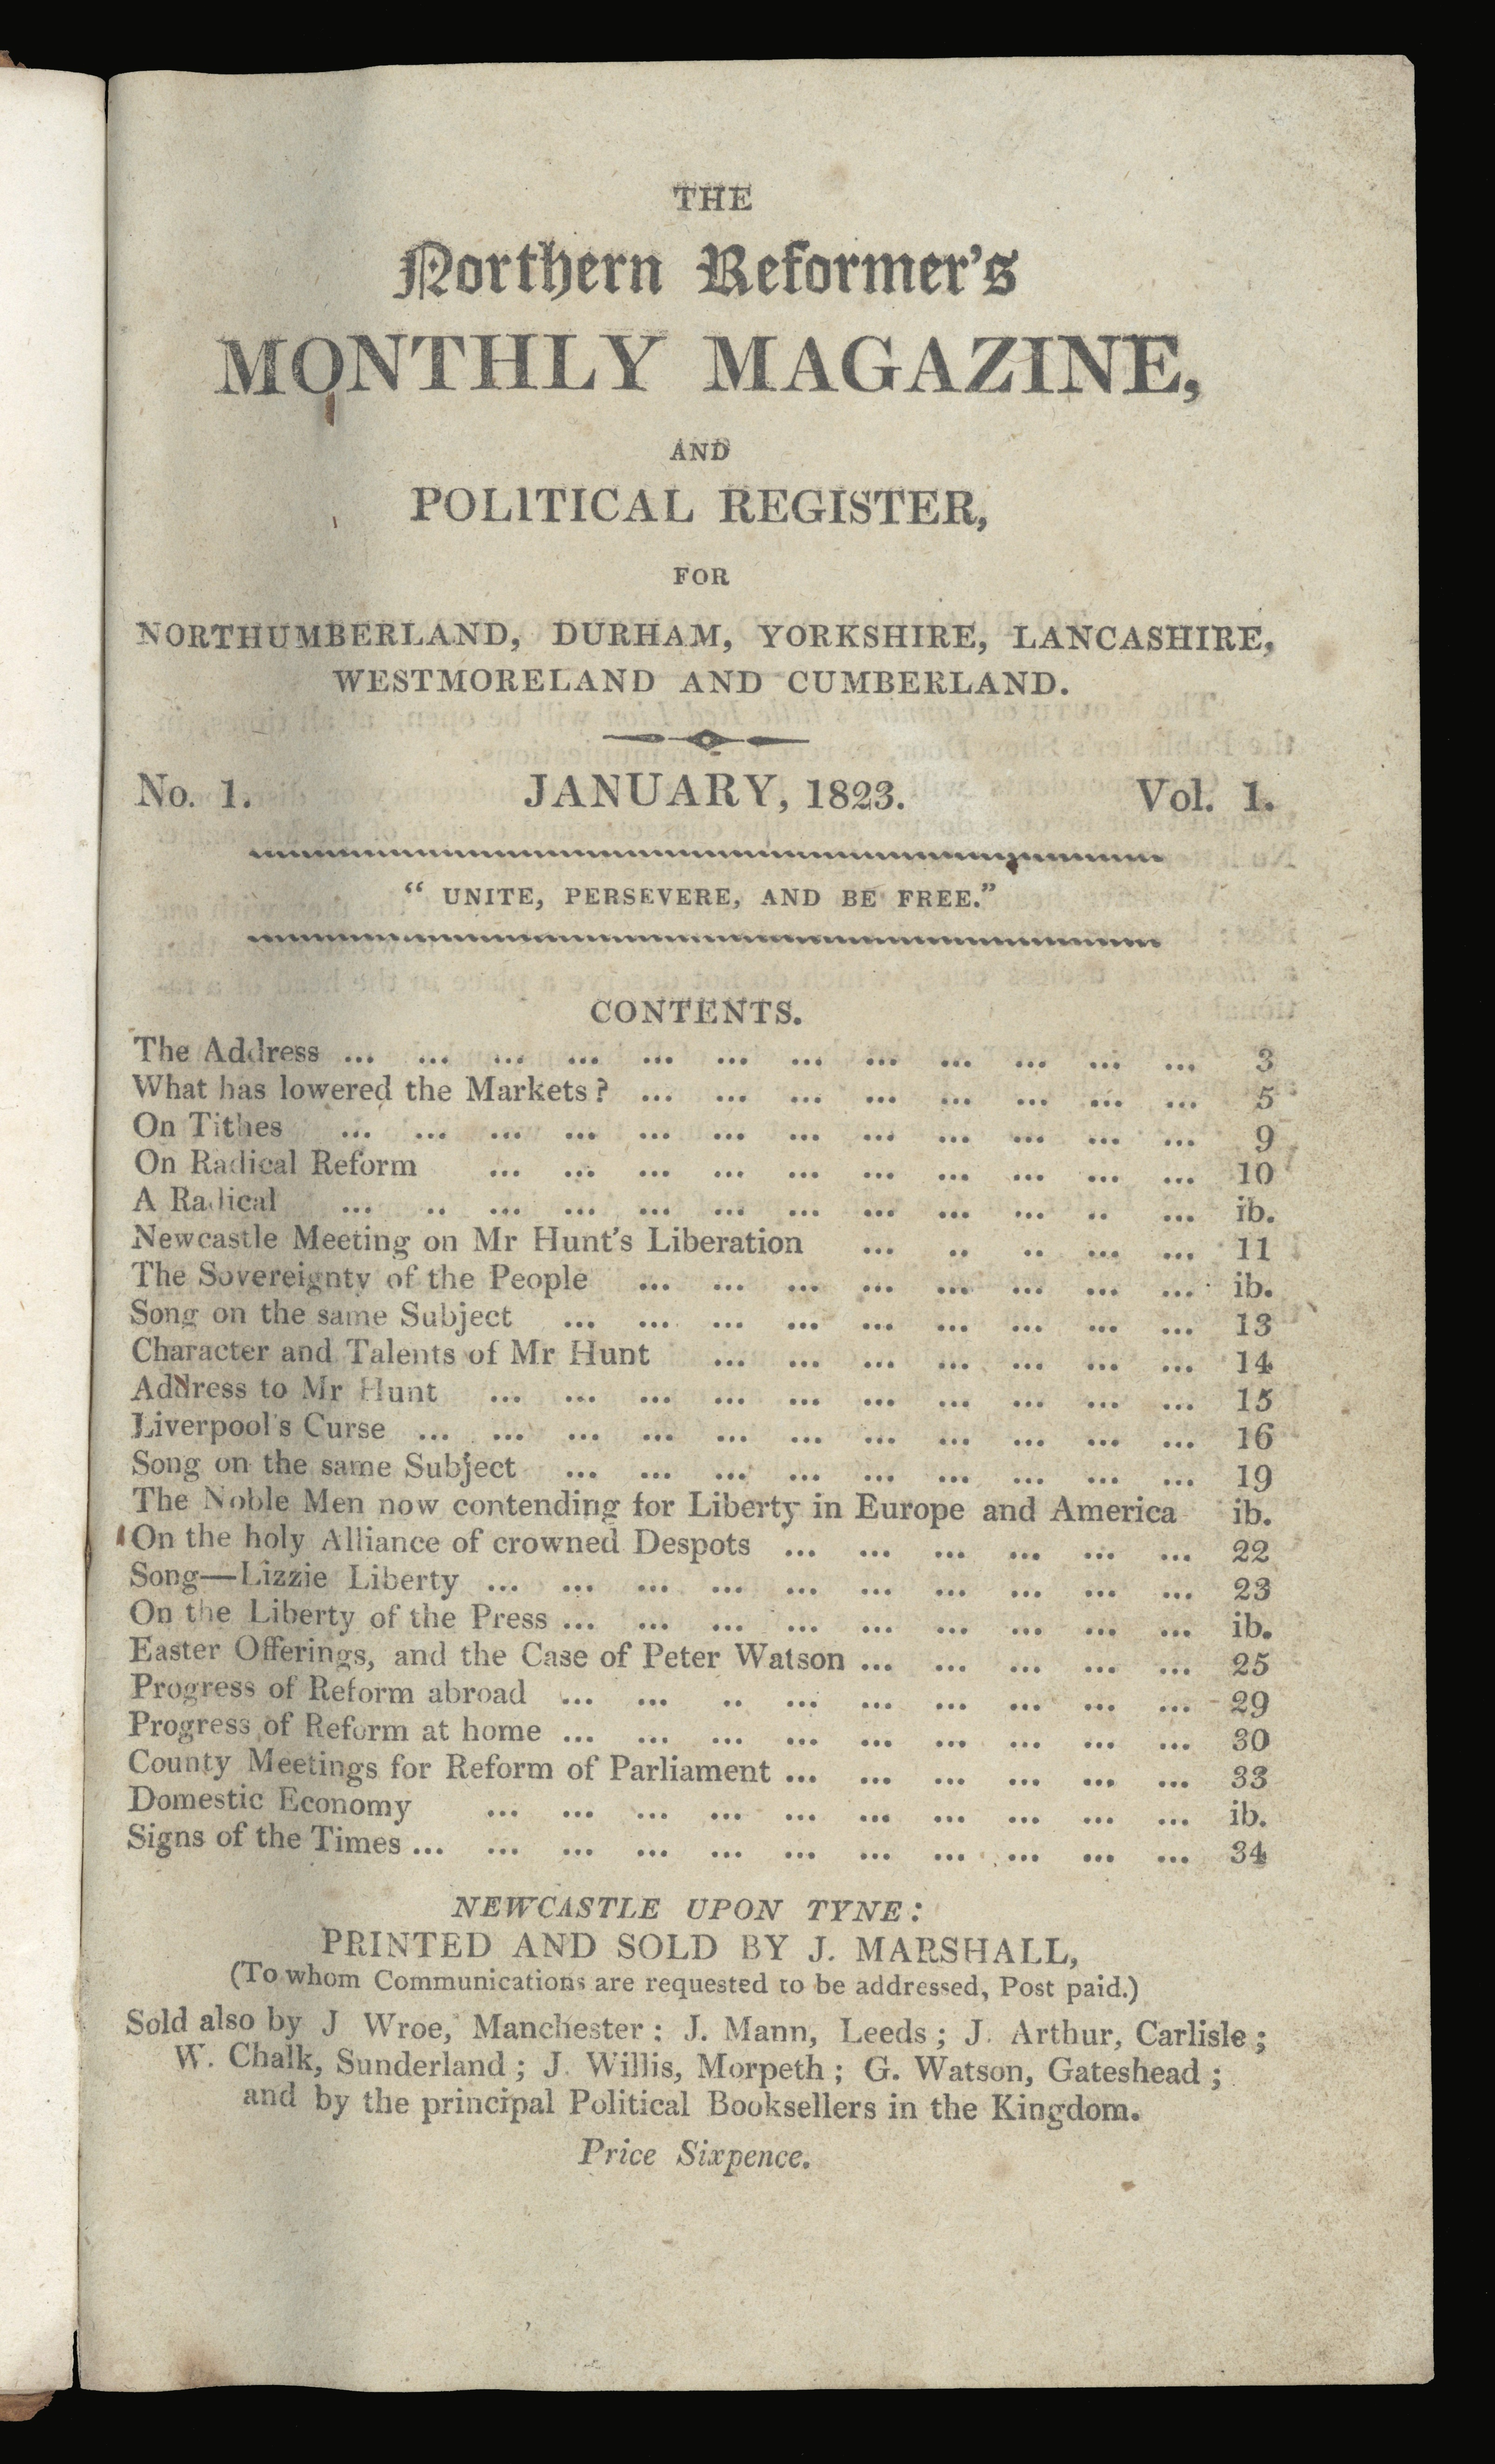 The Northern Reformer's Monthly Magazine, and Political Register, for Northumberland, Durham, Yorkshire, Lancashire, Westmoreland and Cumberland (Newcastle upon Tyne: J. Marshall, 1823) Rare Books 941.074 NOR